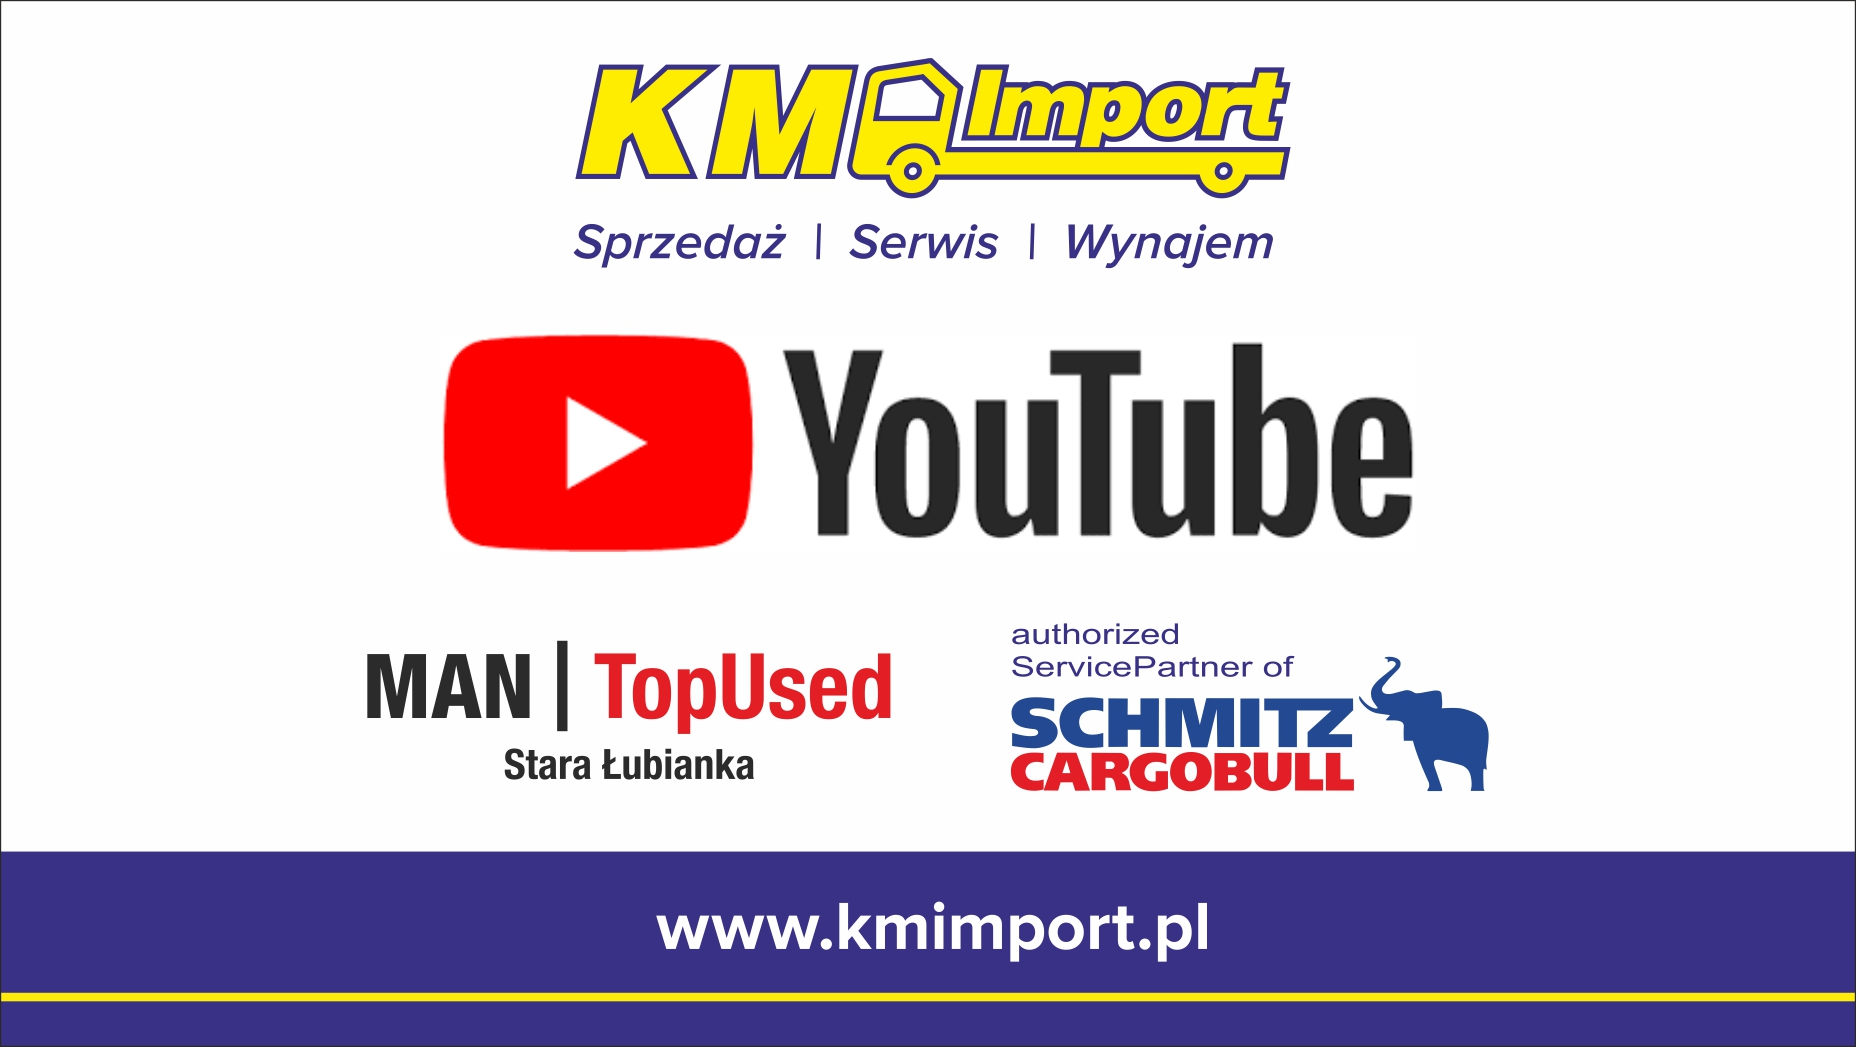 KM IMPORT na kanale YouTube - KM Import